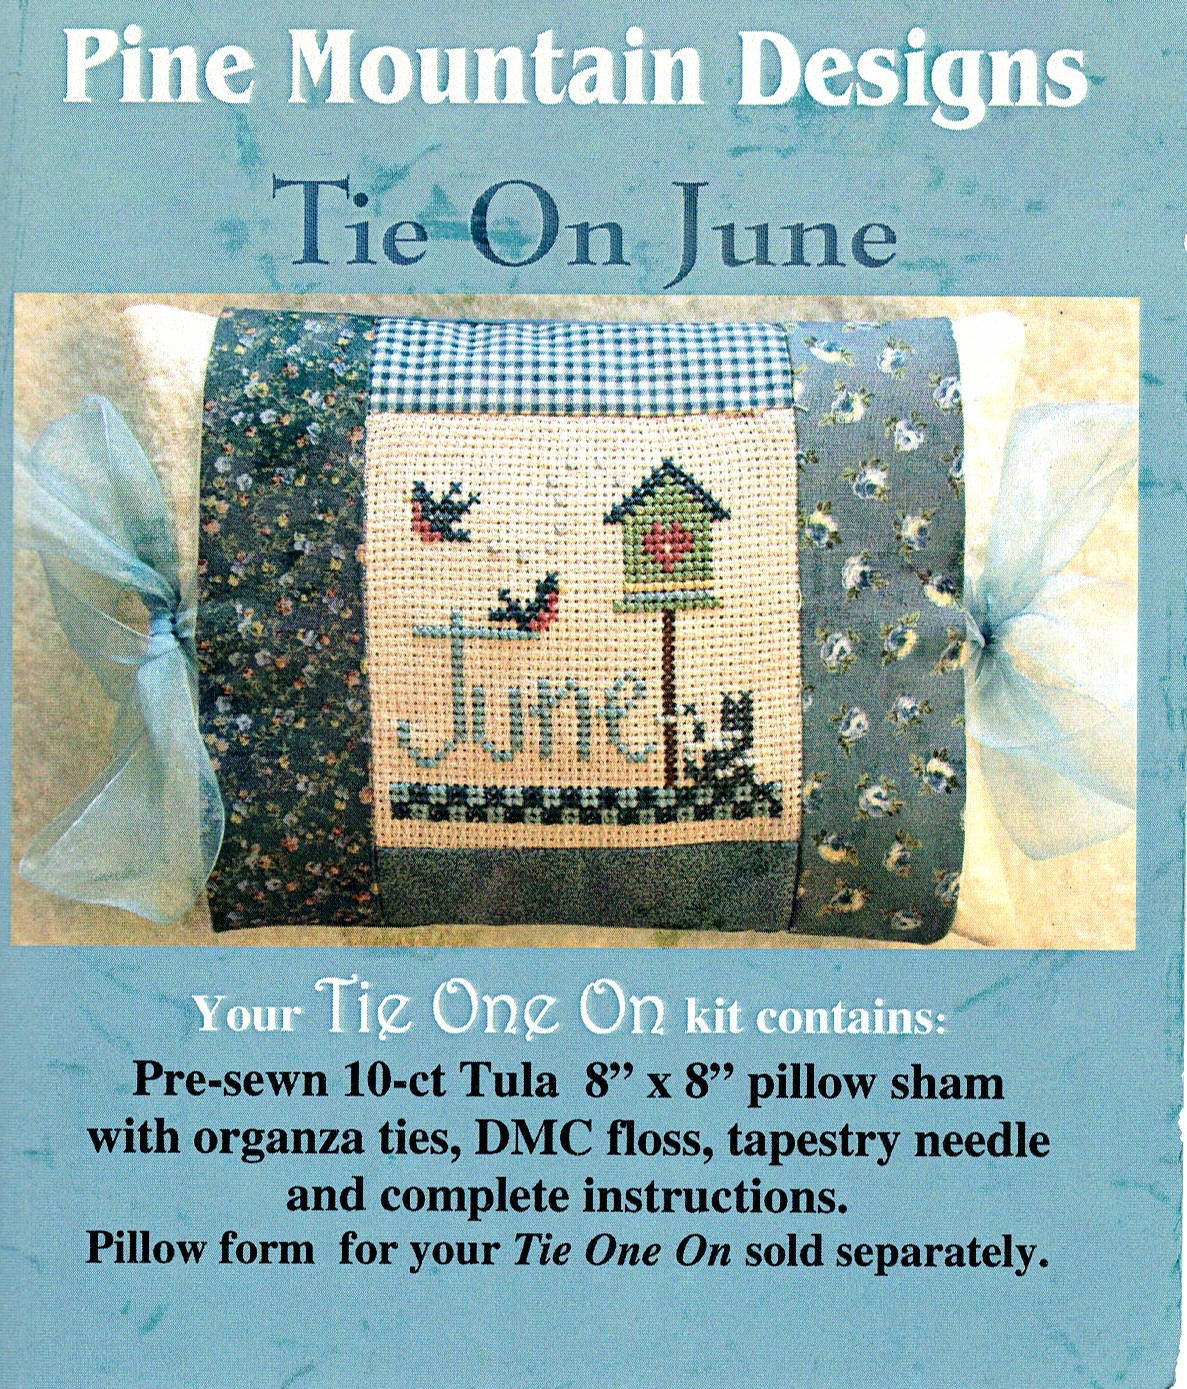 Tie One On Kit - June